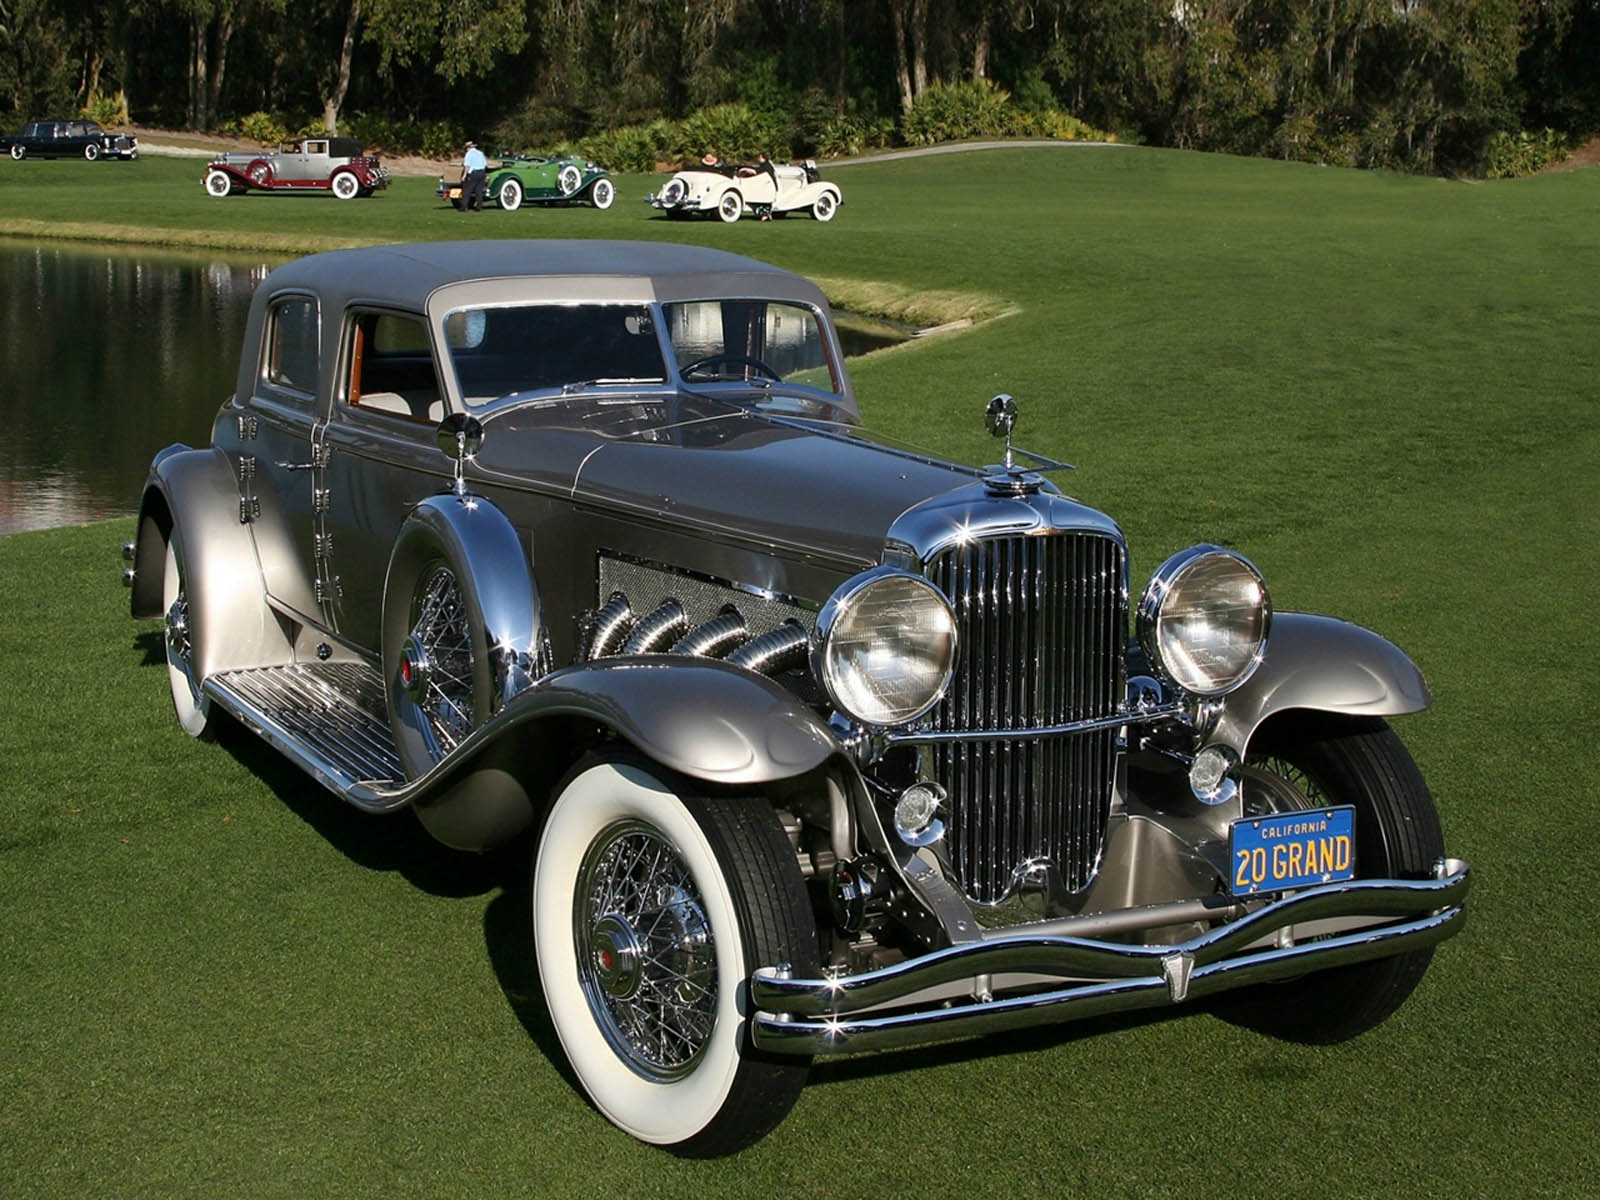 duesenberg vintage car wallpapers - photo #23